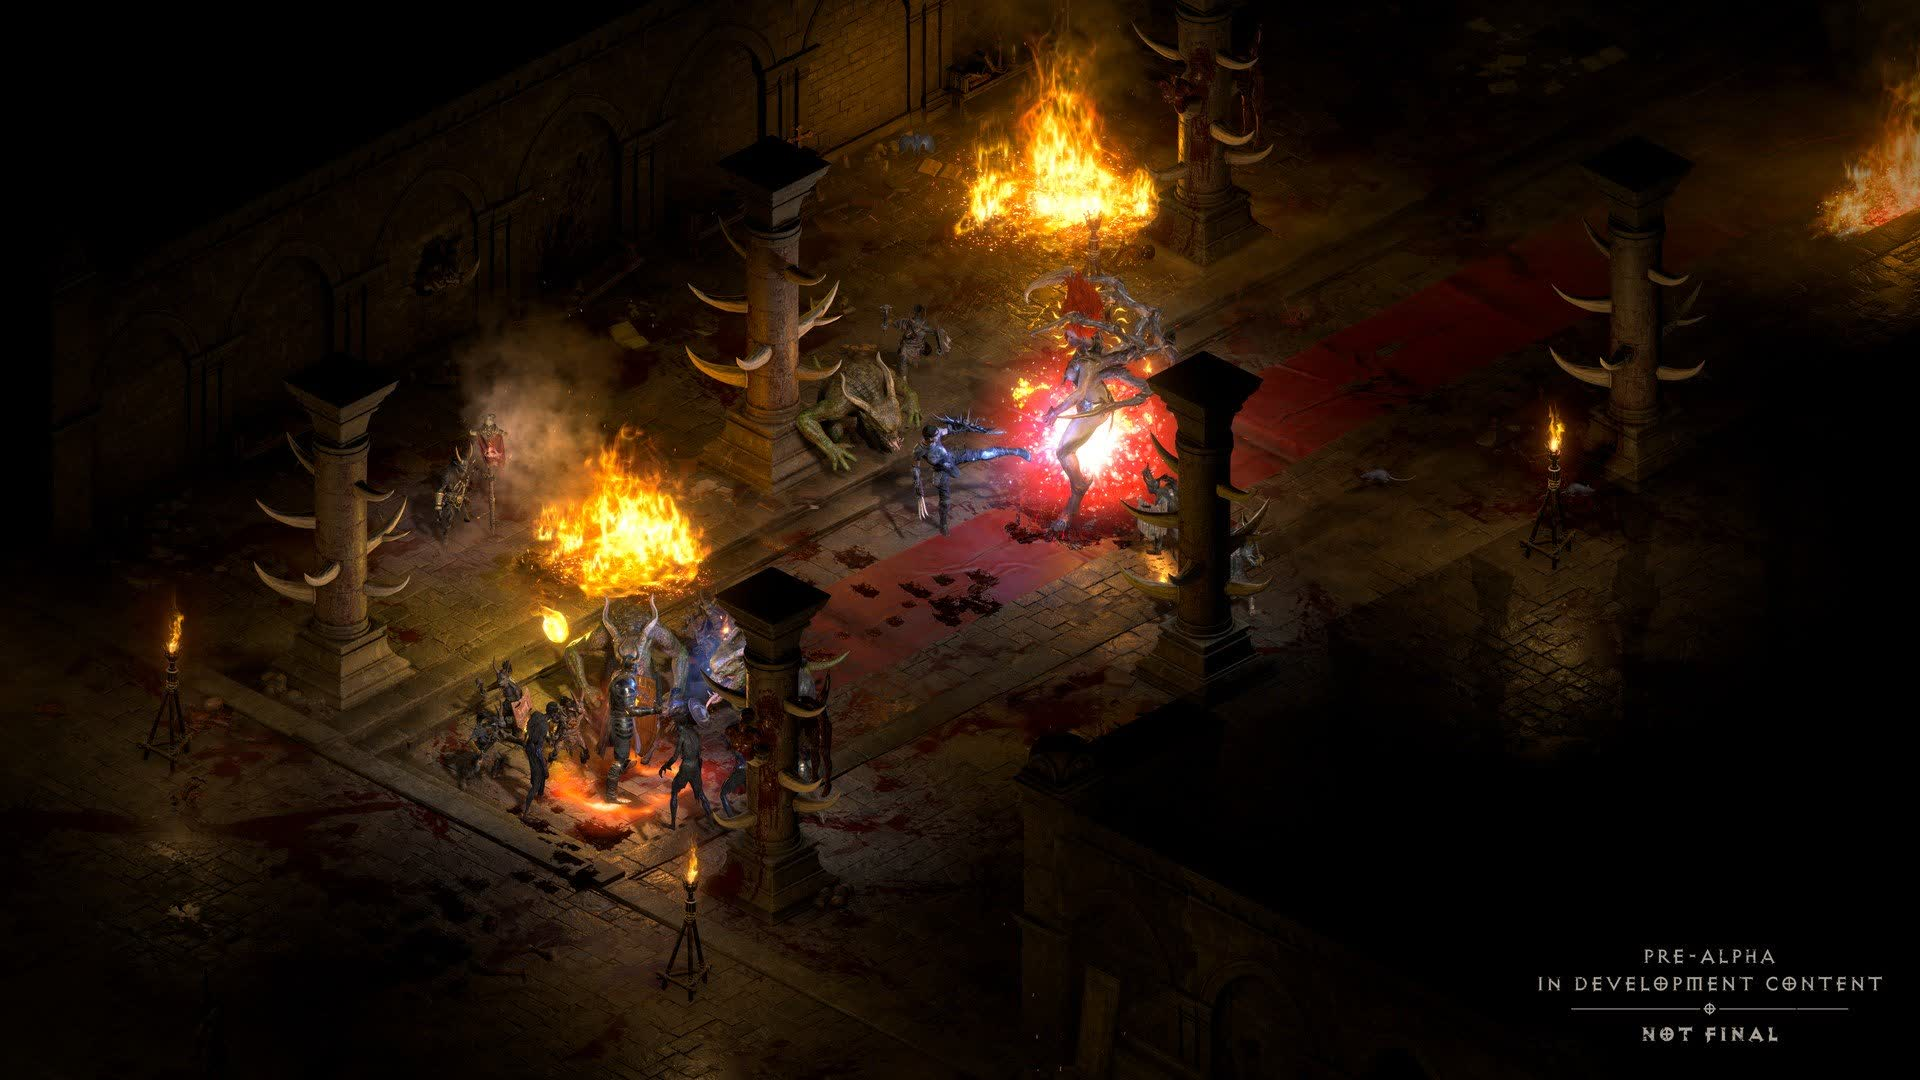 Diablo II: Resurrected will be a faithful remaster of the iconic game